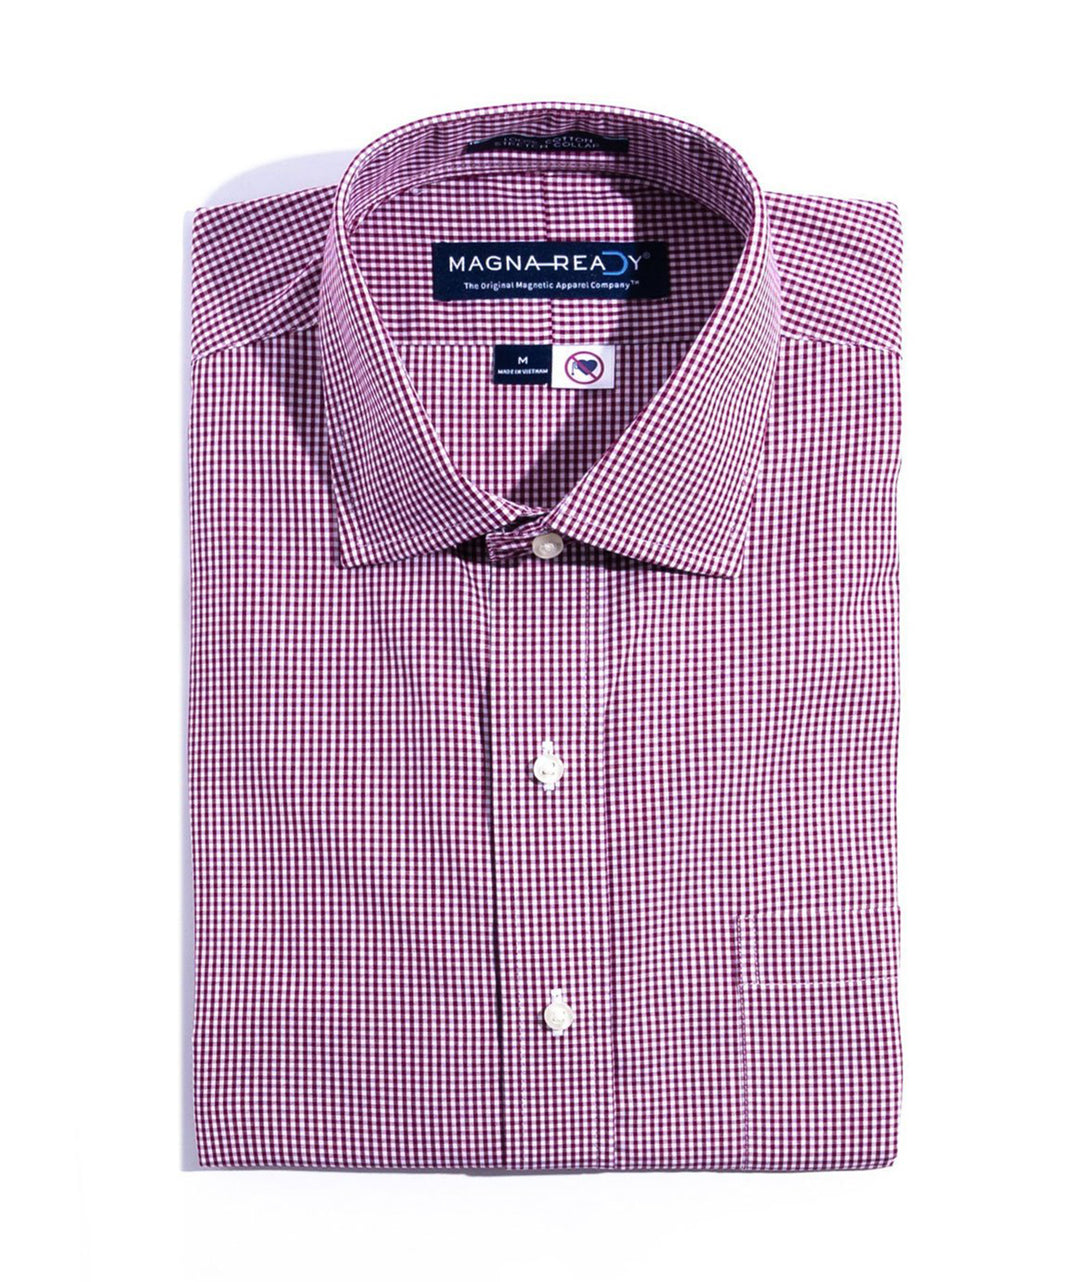 Burgundy And White Gingham Check Poplin Weave Long Sleeve Shirt With Magnetic Closures | JUNIPERunltd